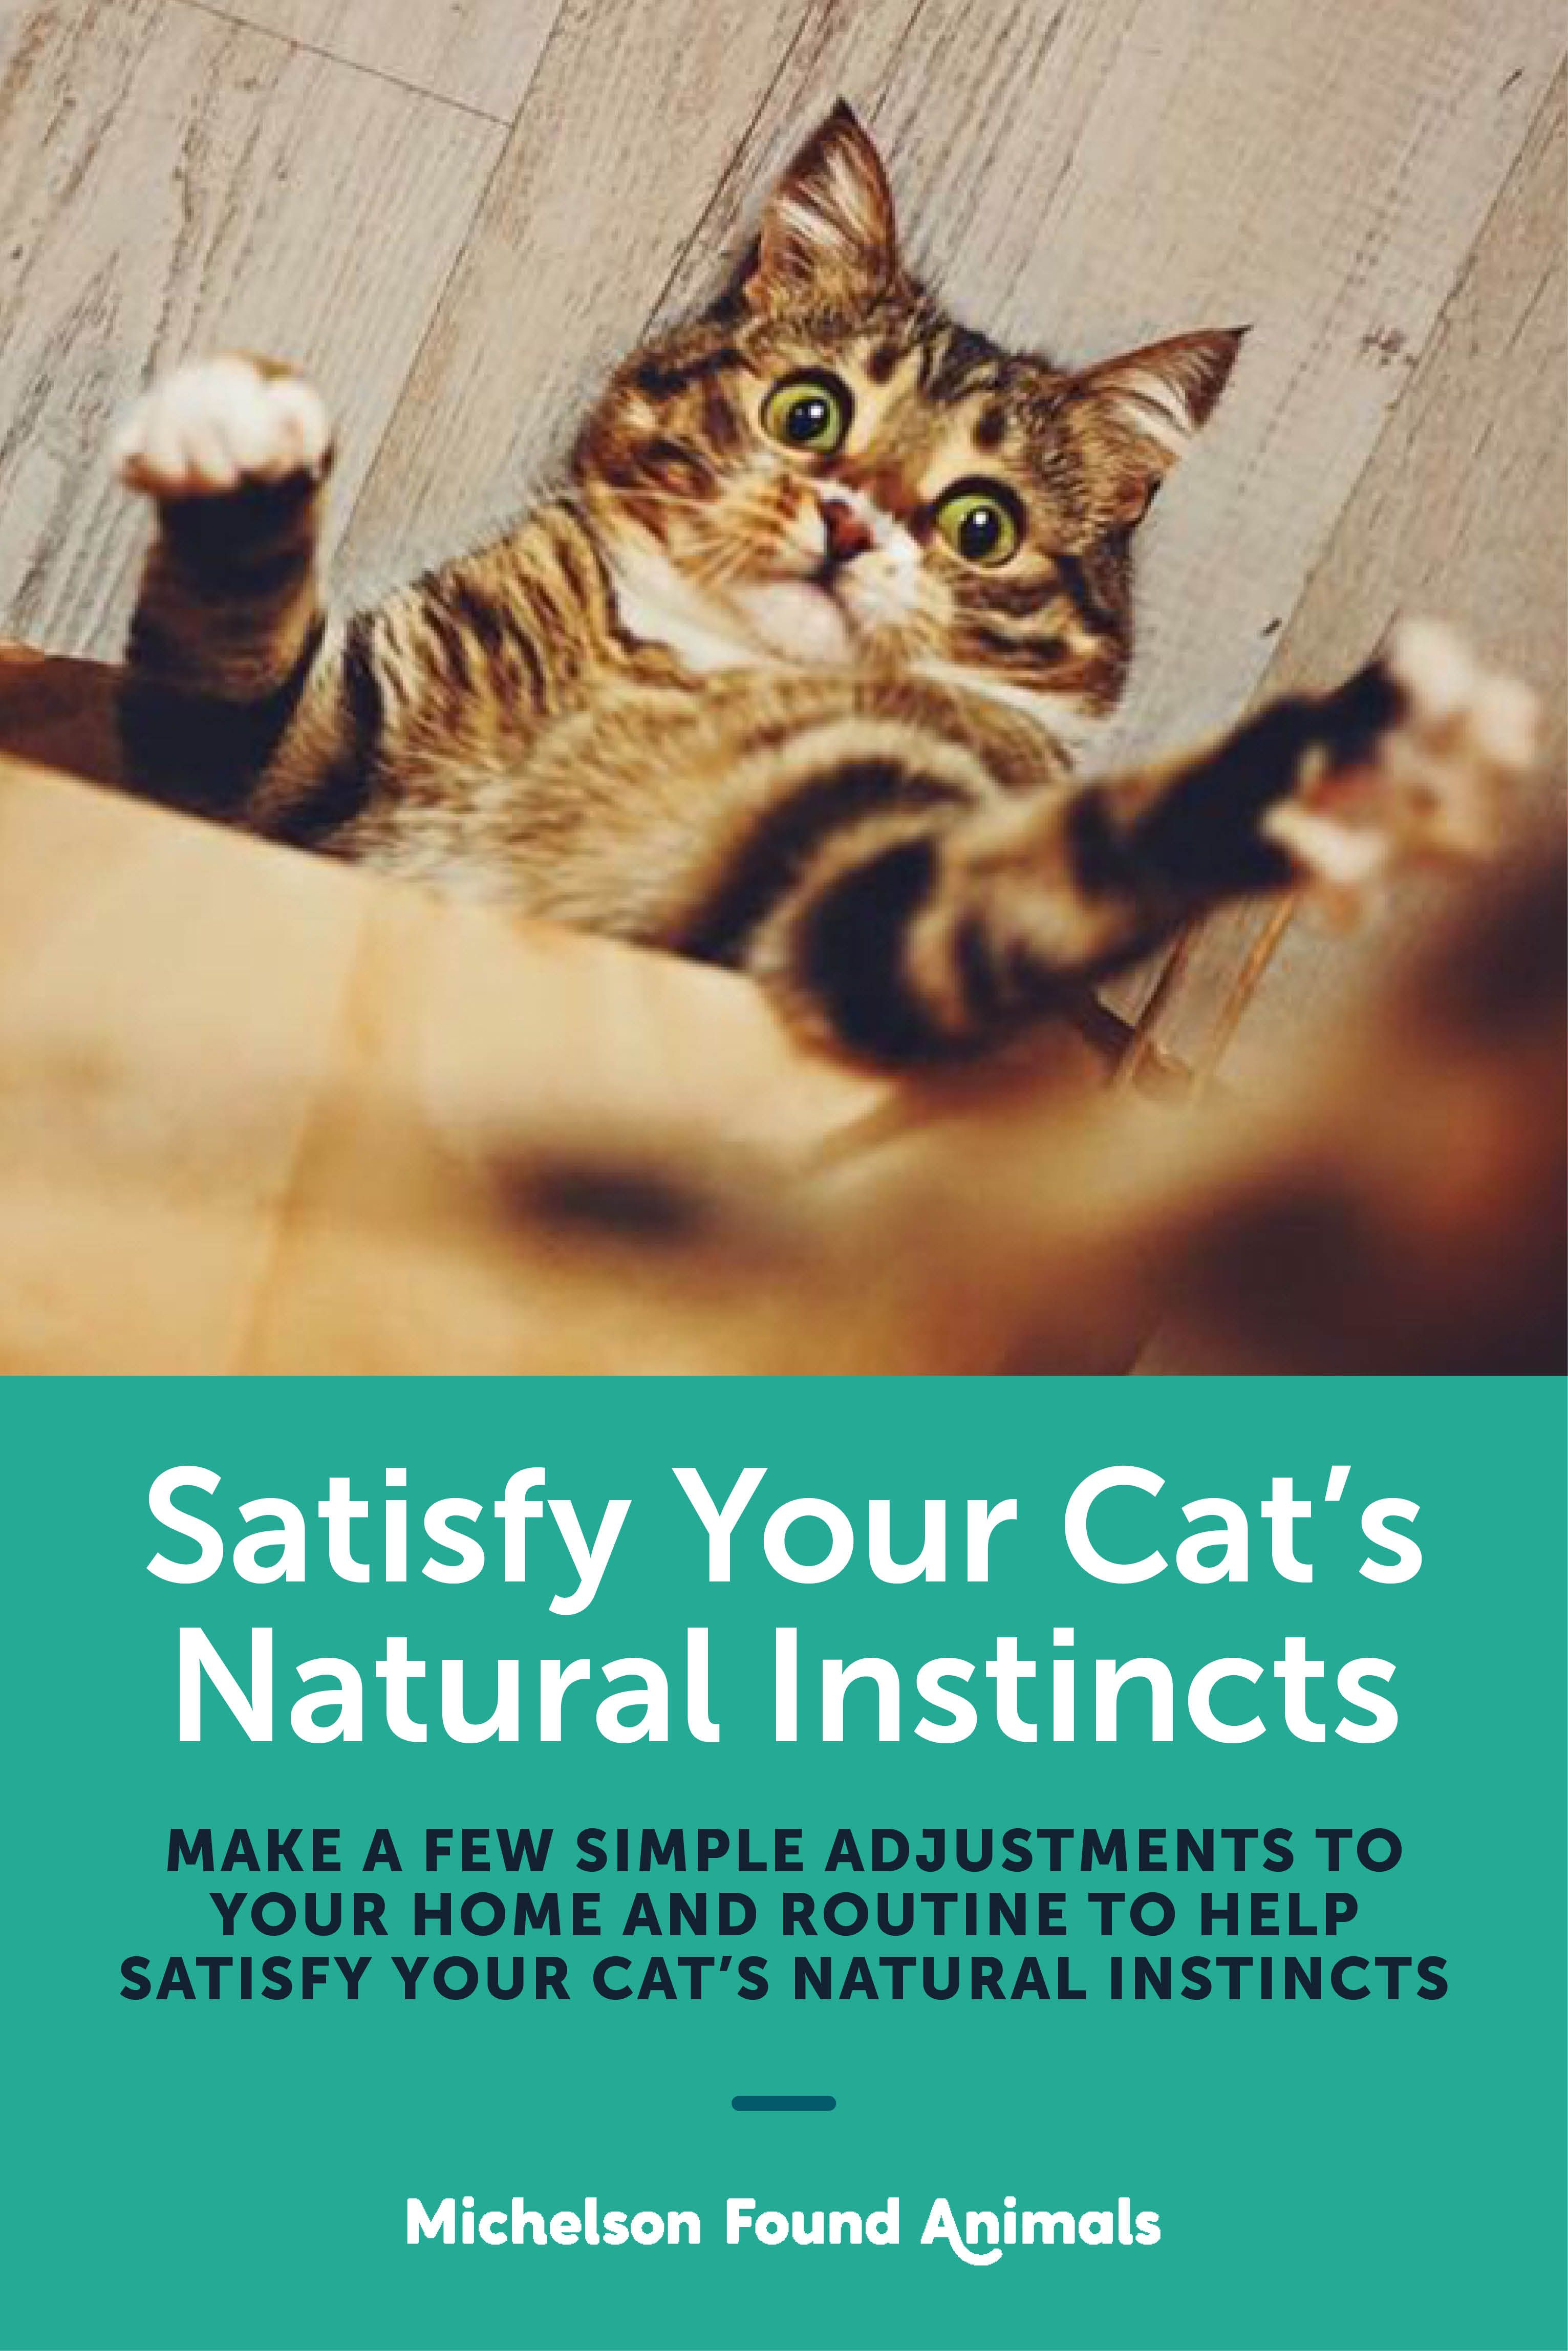 How to Satisfy Your Cat's Natural Instincts Michelson